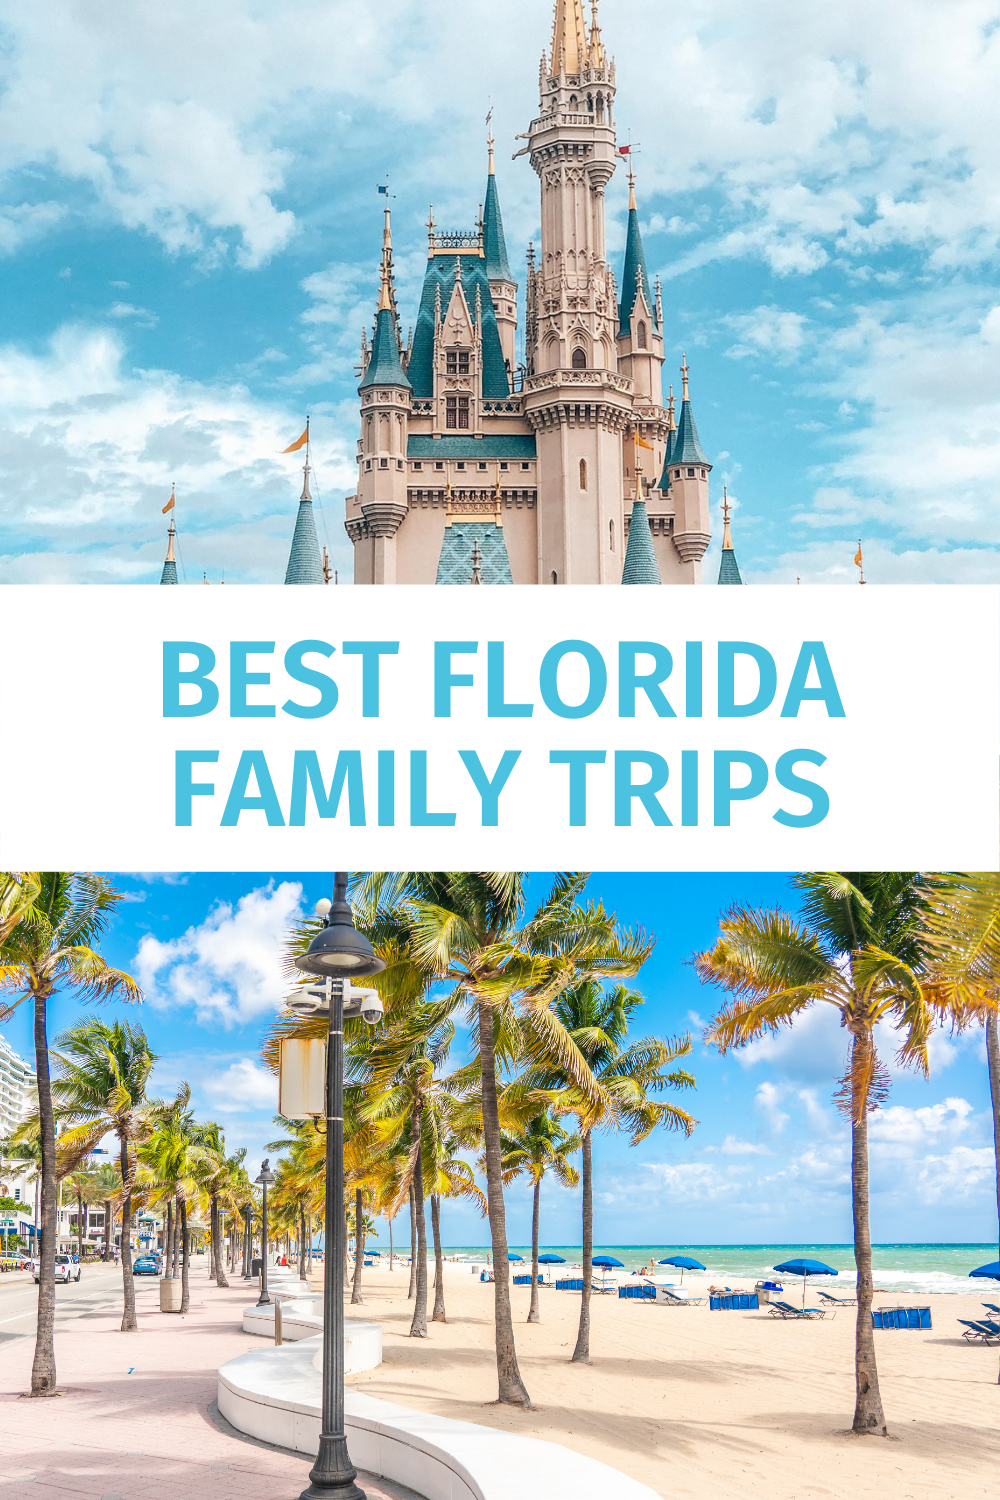 15 Unbeatable Florida Family Vacations With Kids Cuddlynest Travel Blog Family Friendly Vacation Destinations Florida Family Vacation Florida Family Trip